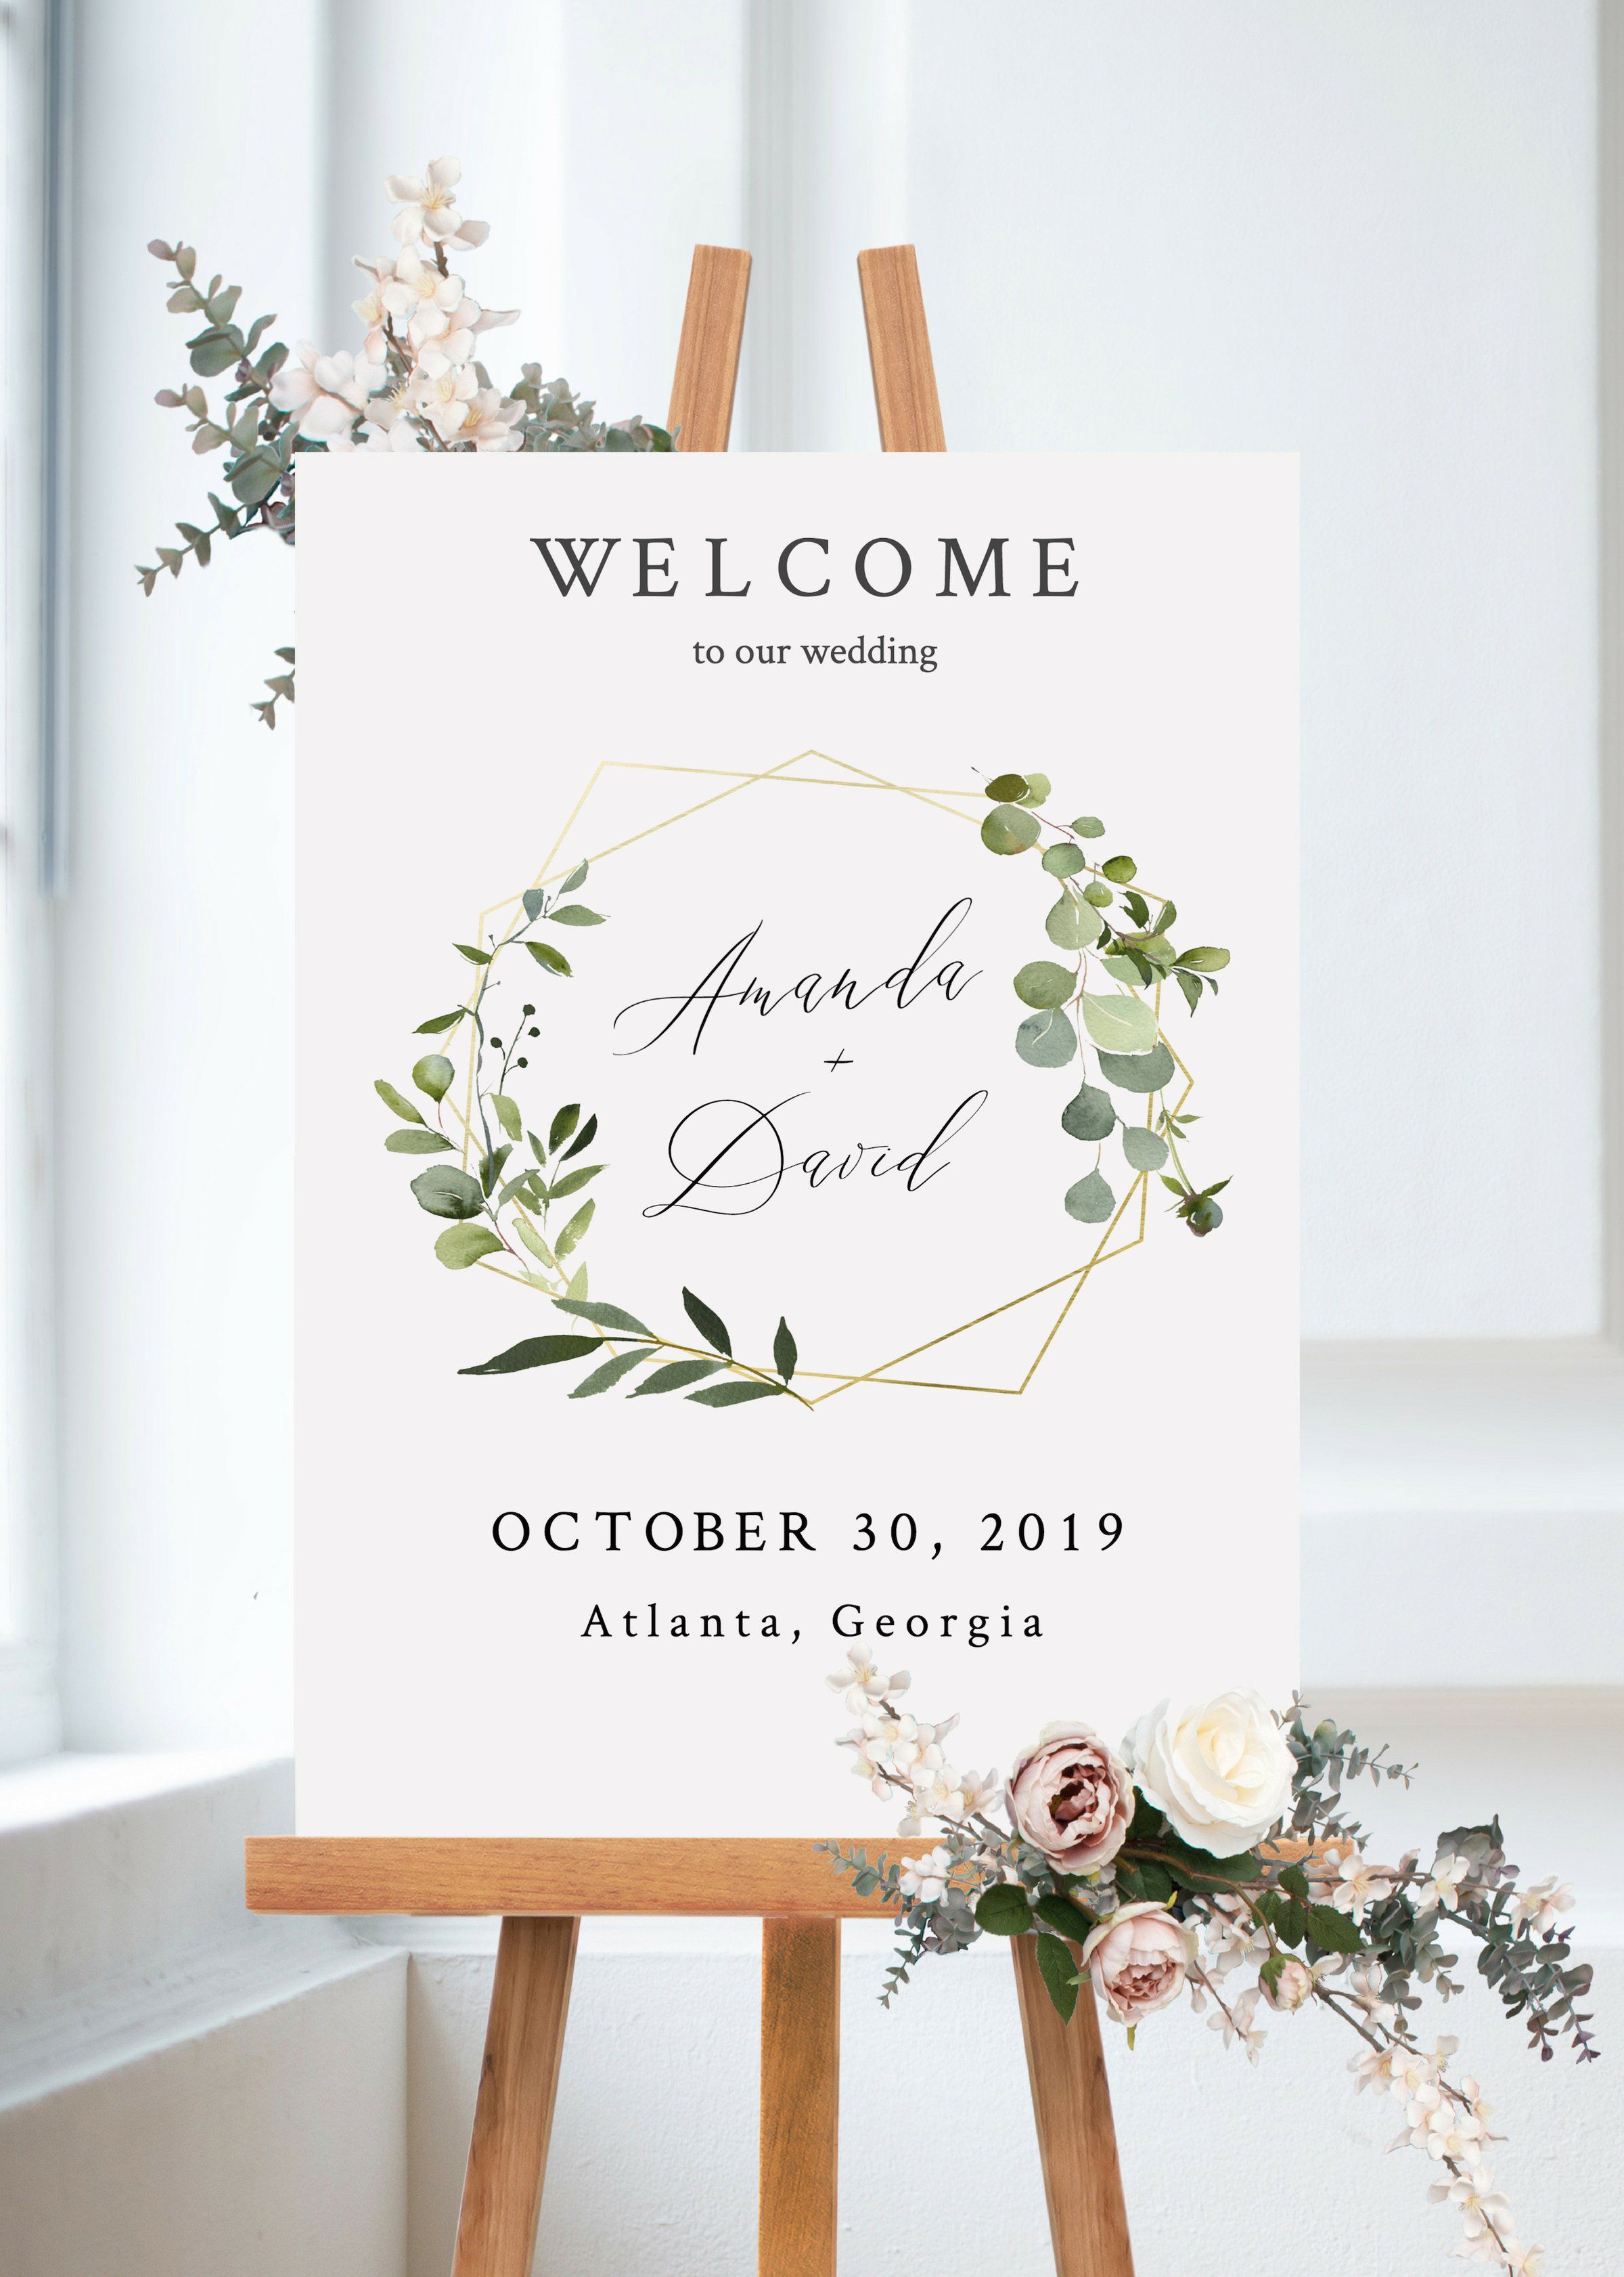 Kristina - Welcome #weddingwelcomesign